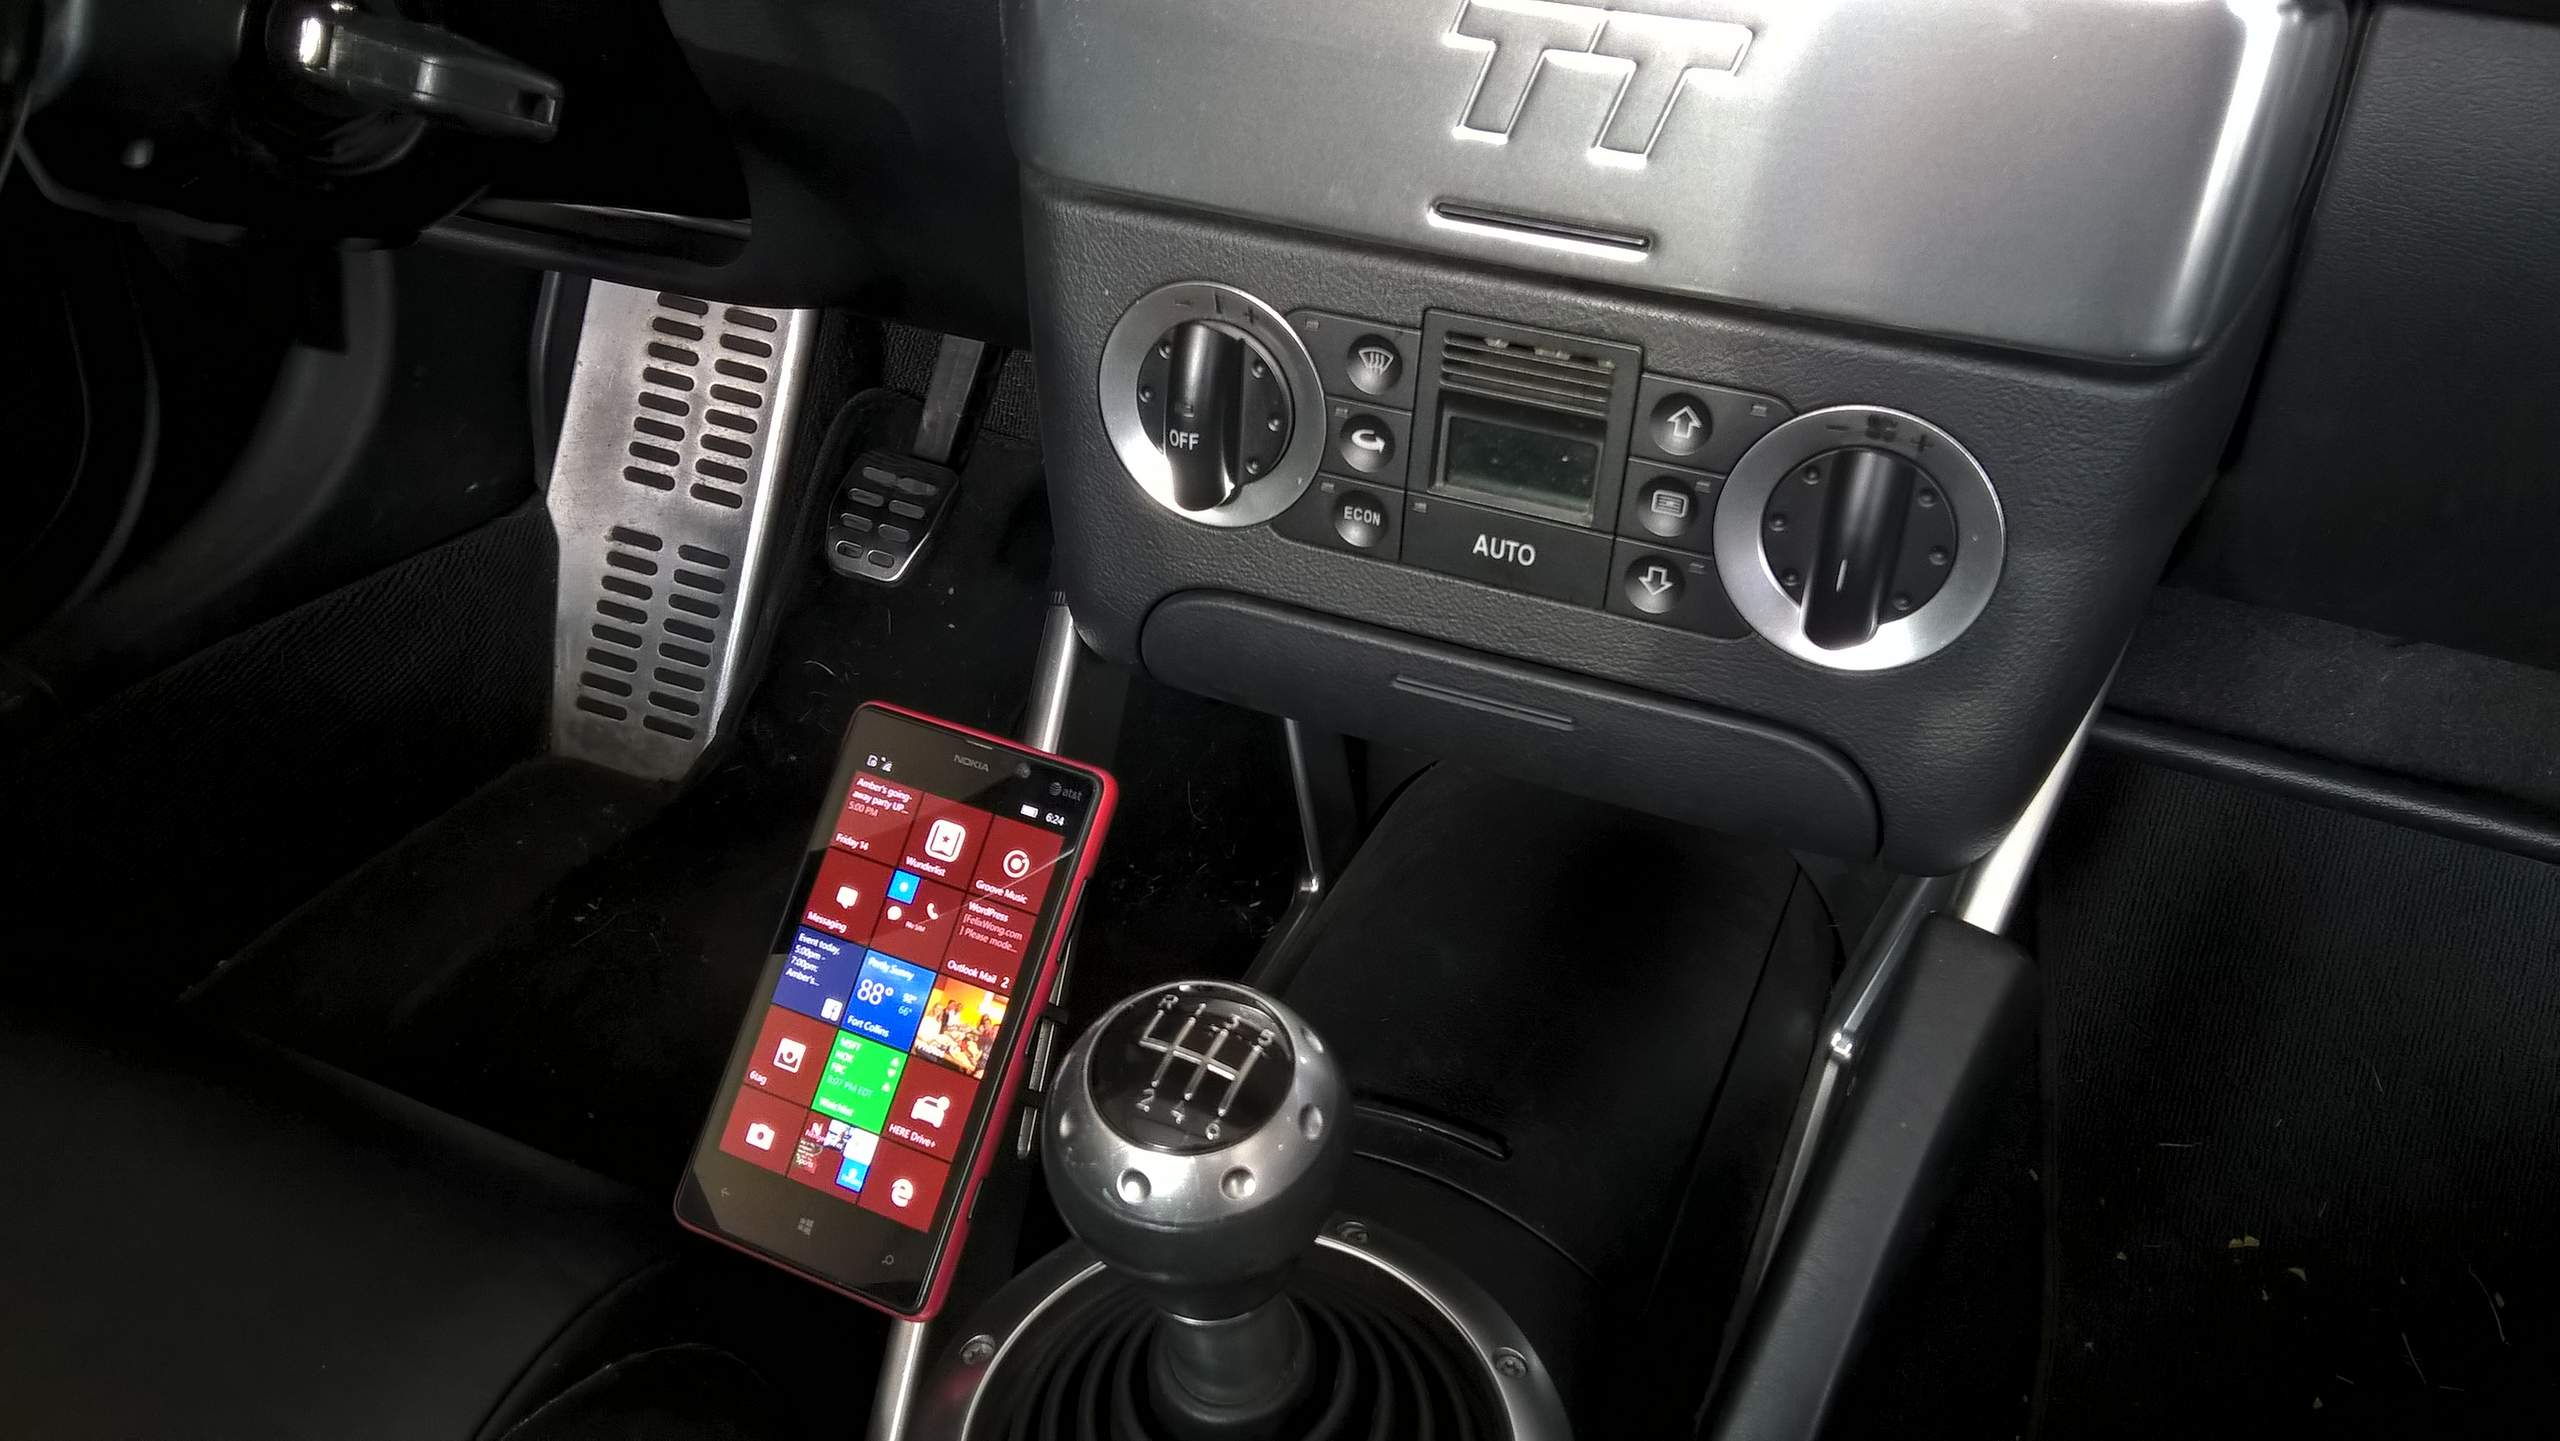 Best Way To Attach Smartphone In Car: Magnetic Phone Mount